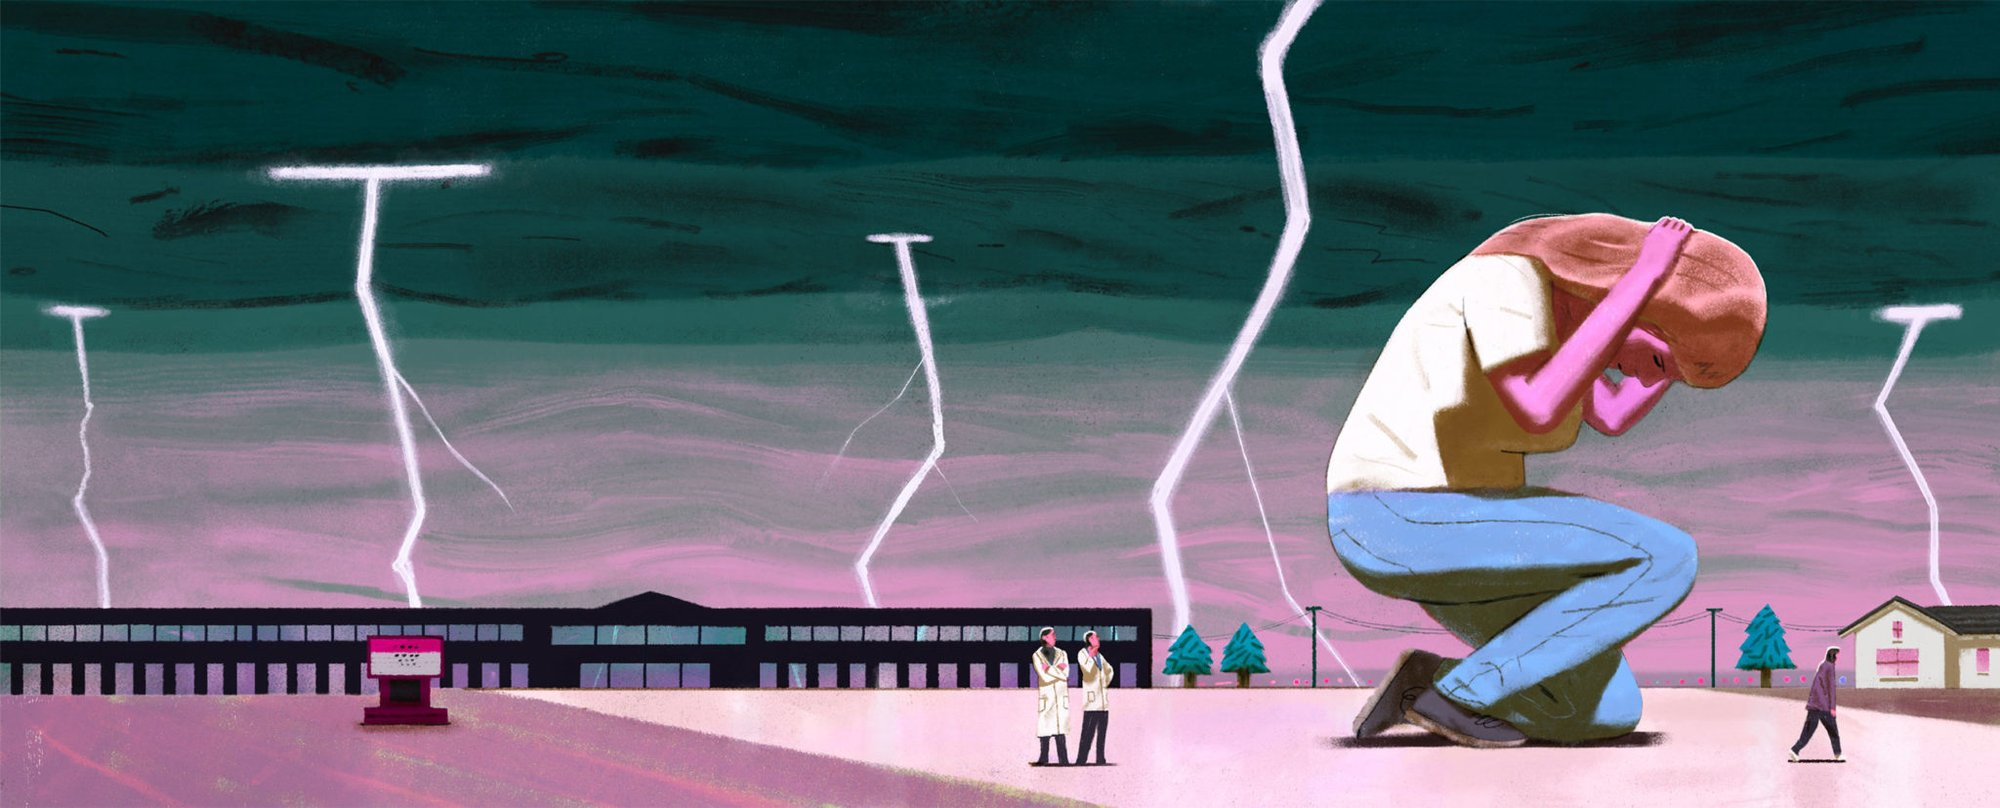 illustration of a person ducking as lightning strikes around the area